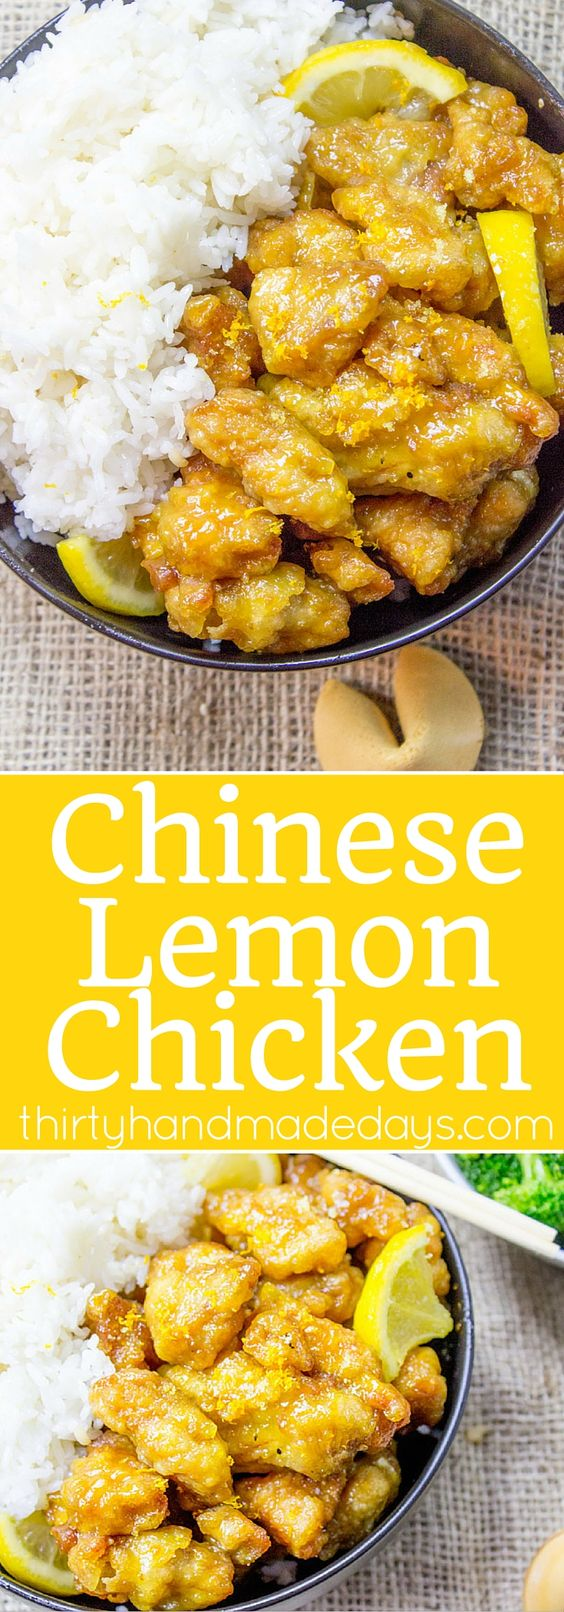 CHINESE LEMON CHICKEN RECIPE